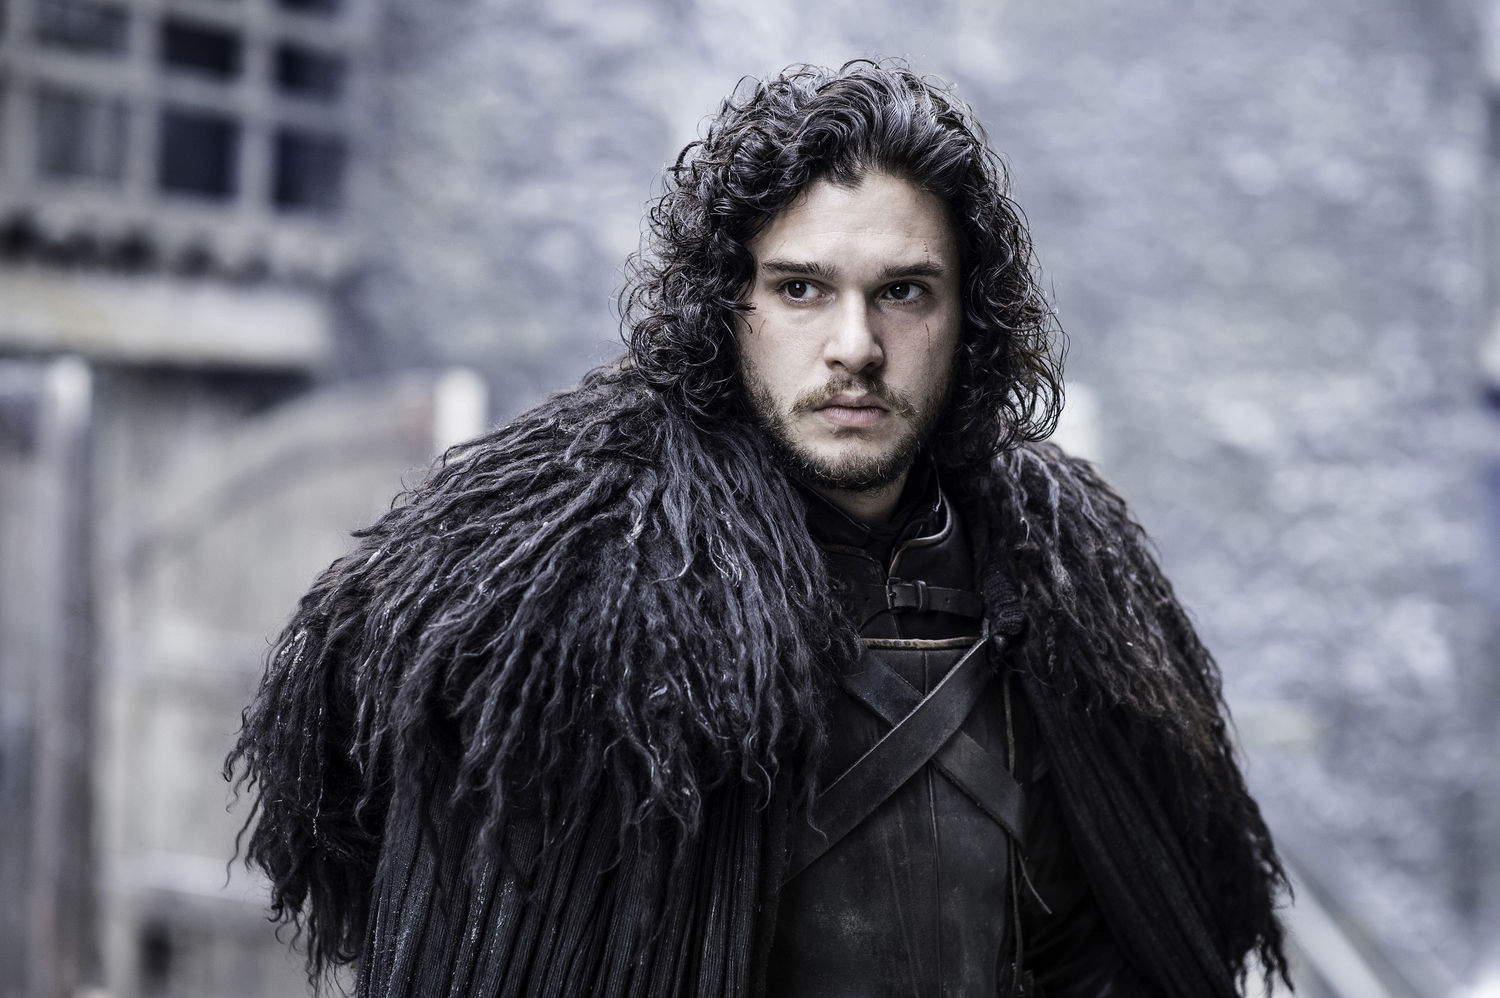 Game Of Thrones' Jon Snow's cape is just an Ikea rug